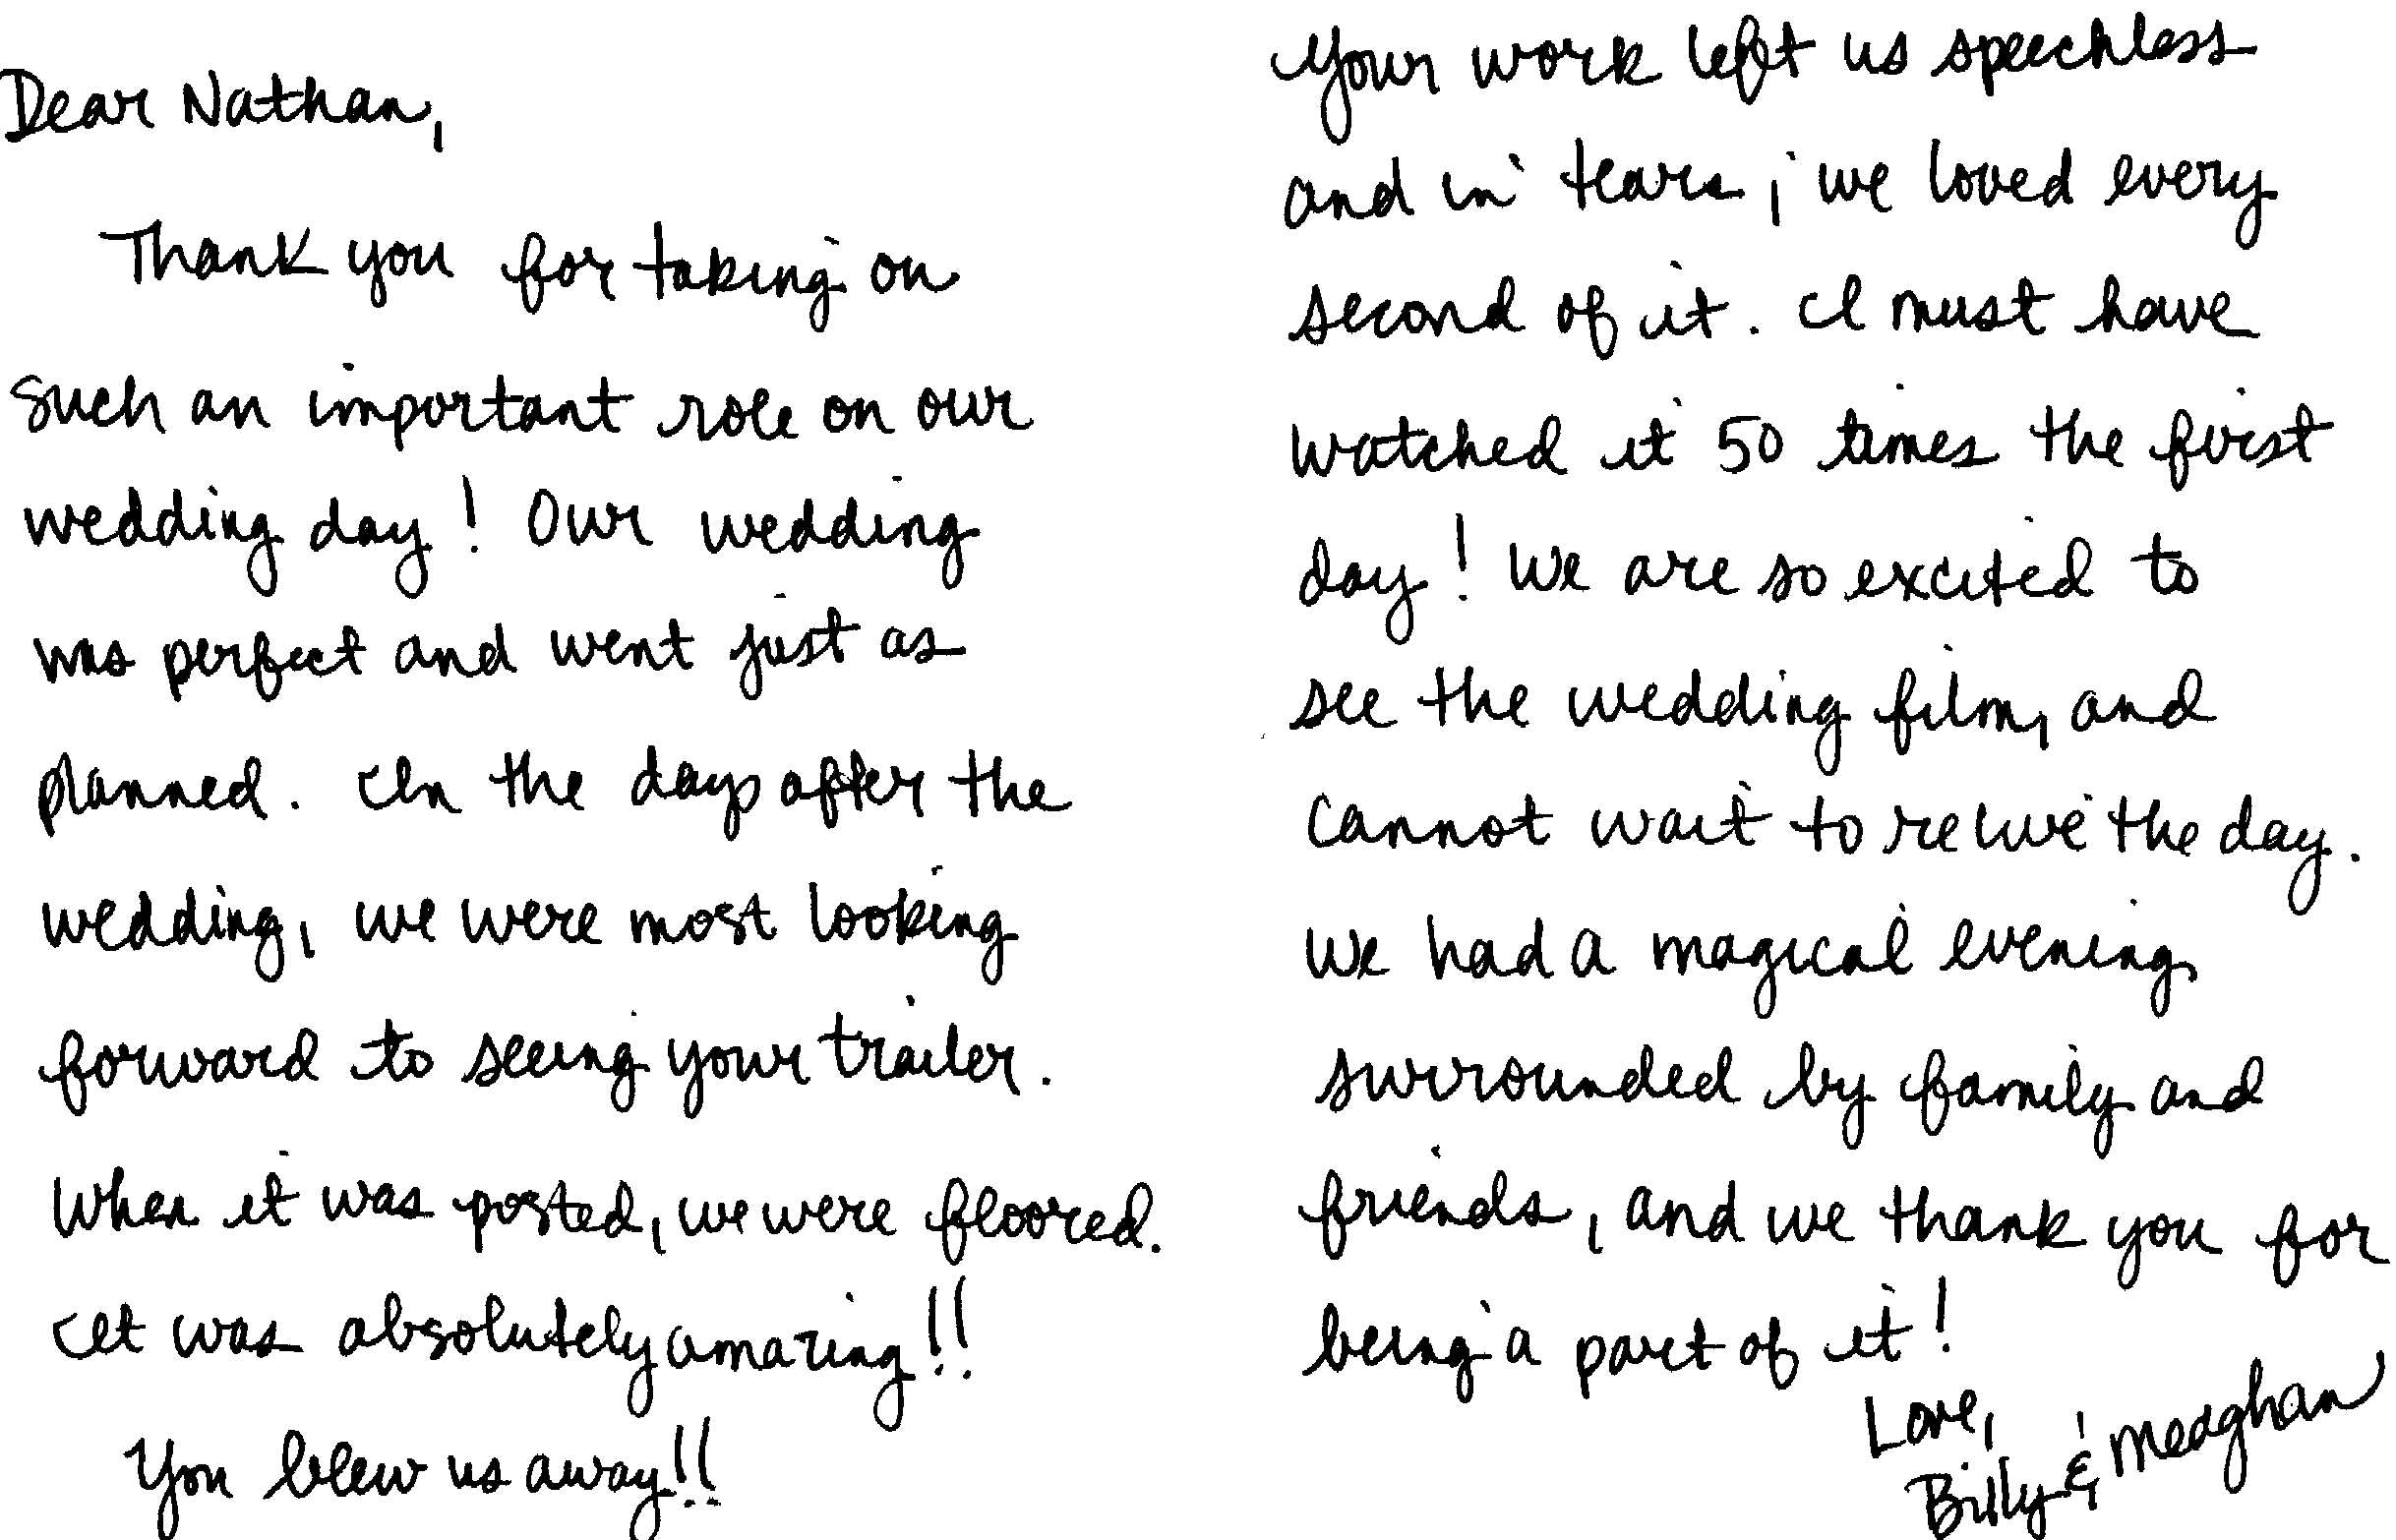 Chicago wedding videographer thank you note review